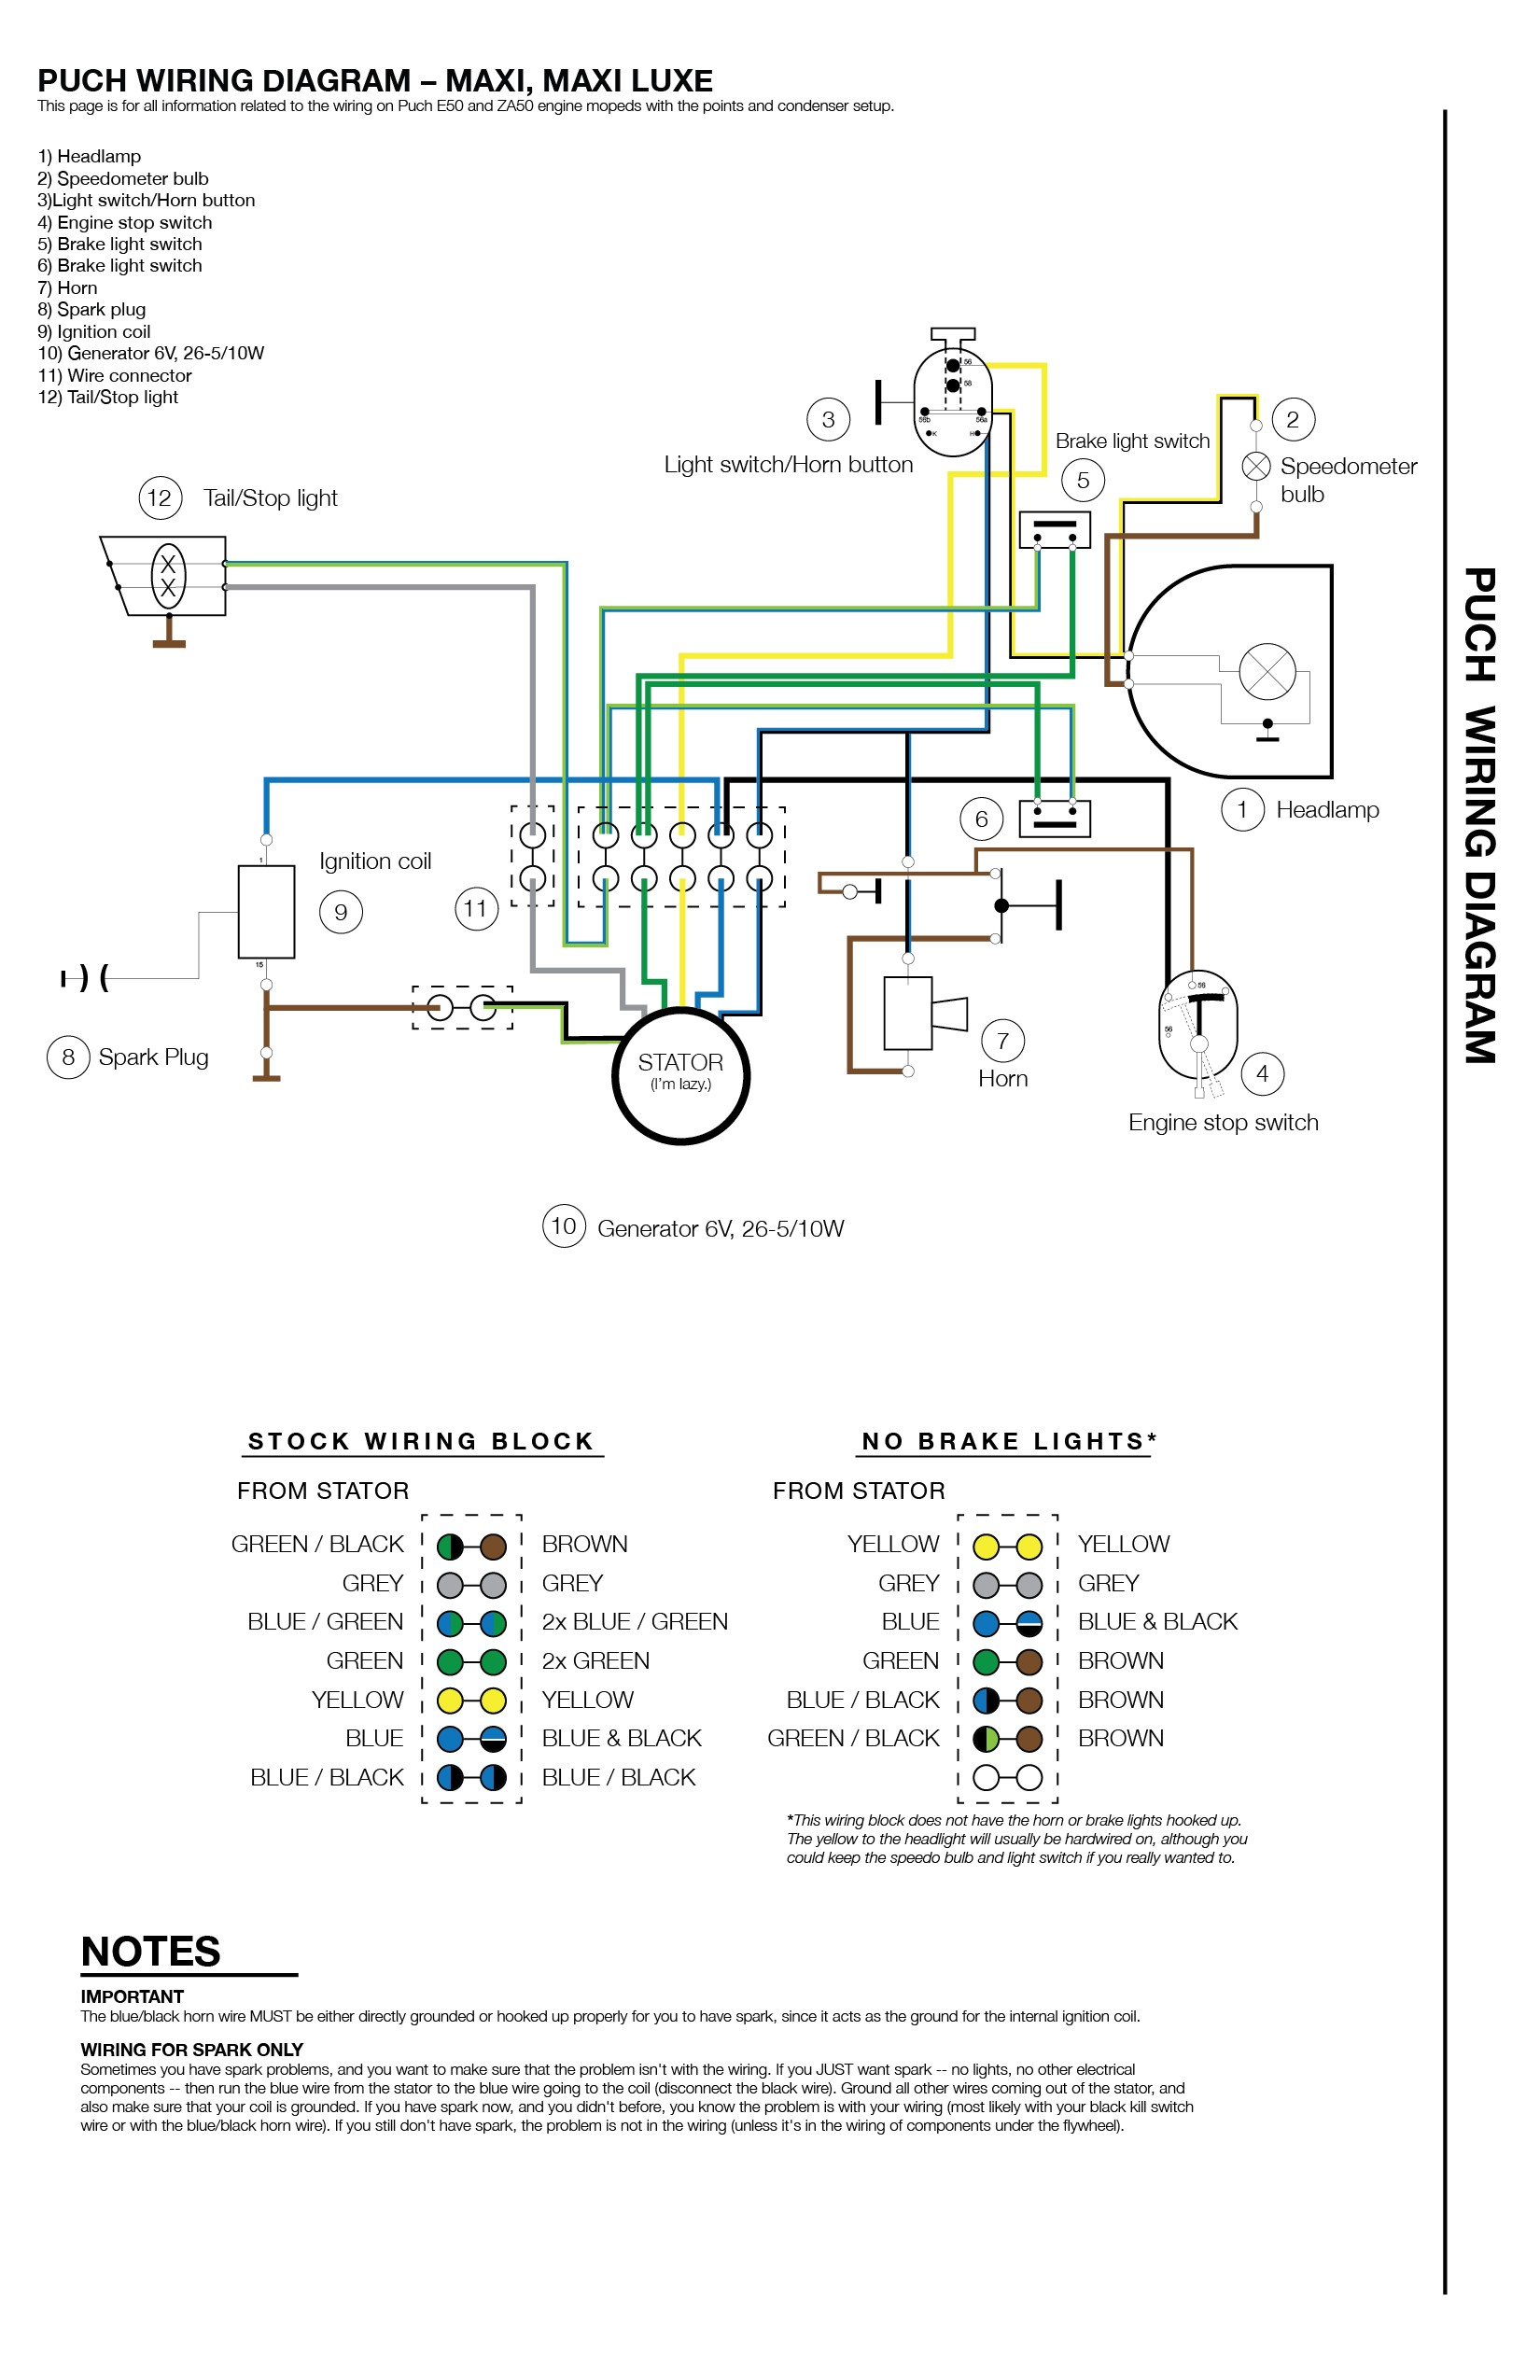 Brake Pedal Switch Diagram Brake Light Switch Wiring Diagram New Puch Wiring Moped Wiki Of Brake Pedal Switch Diagram